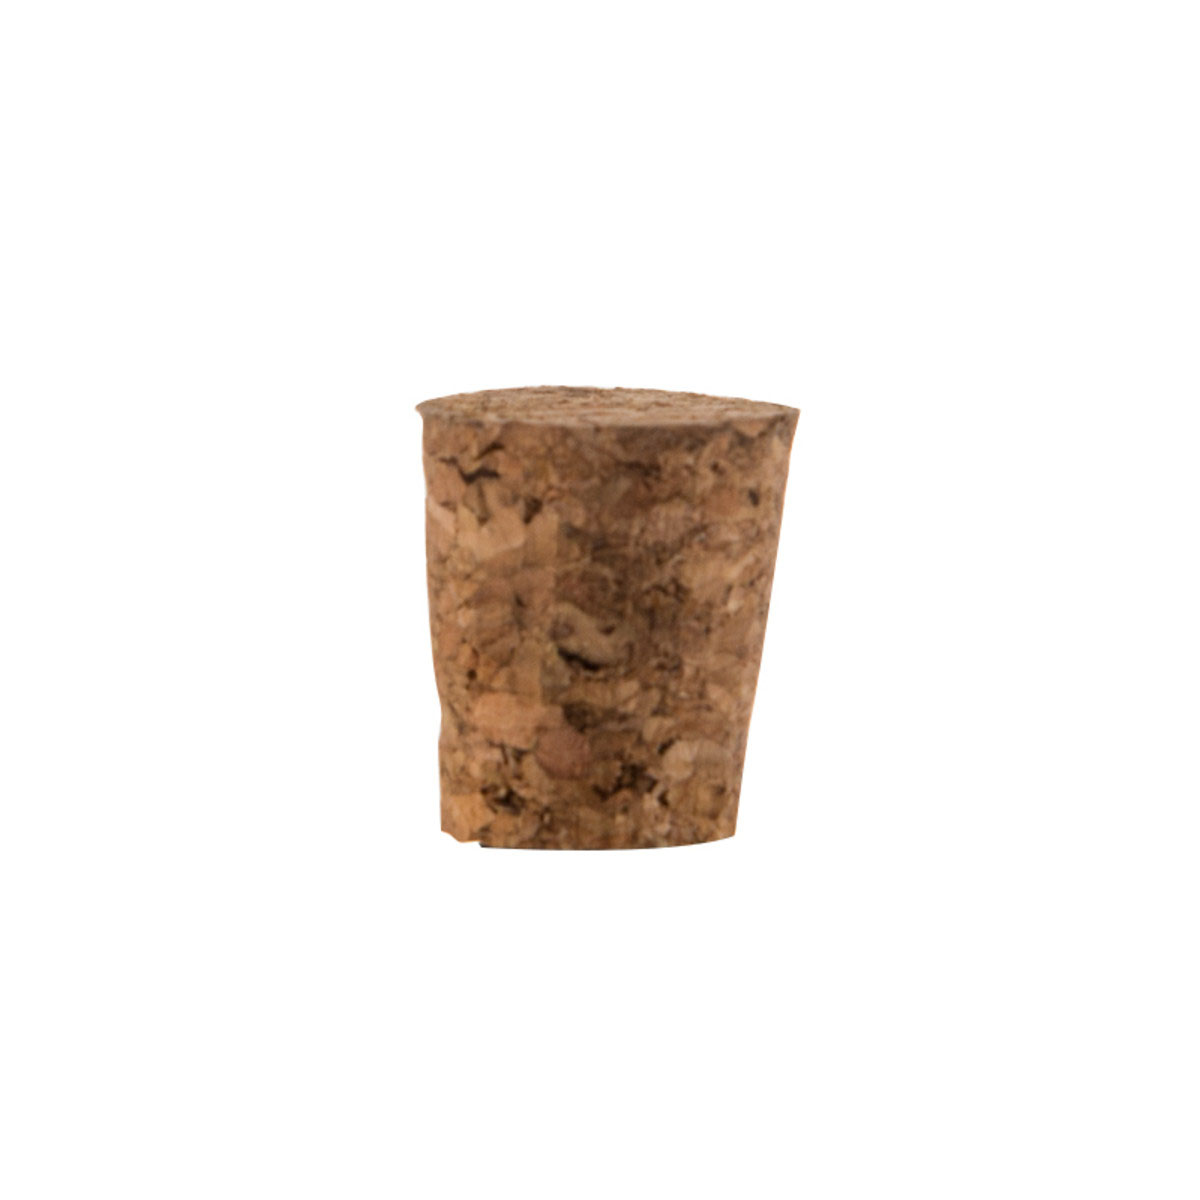 Cork Stopper For 126mm Glass Pre-roll Tube (250 Qty.)